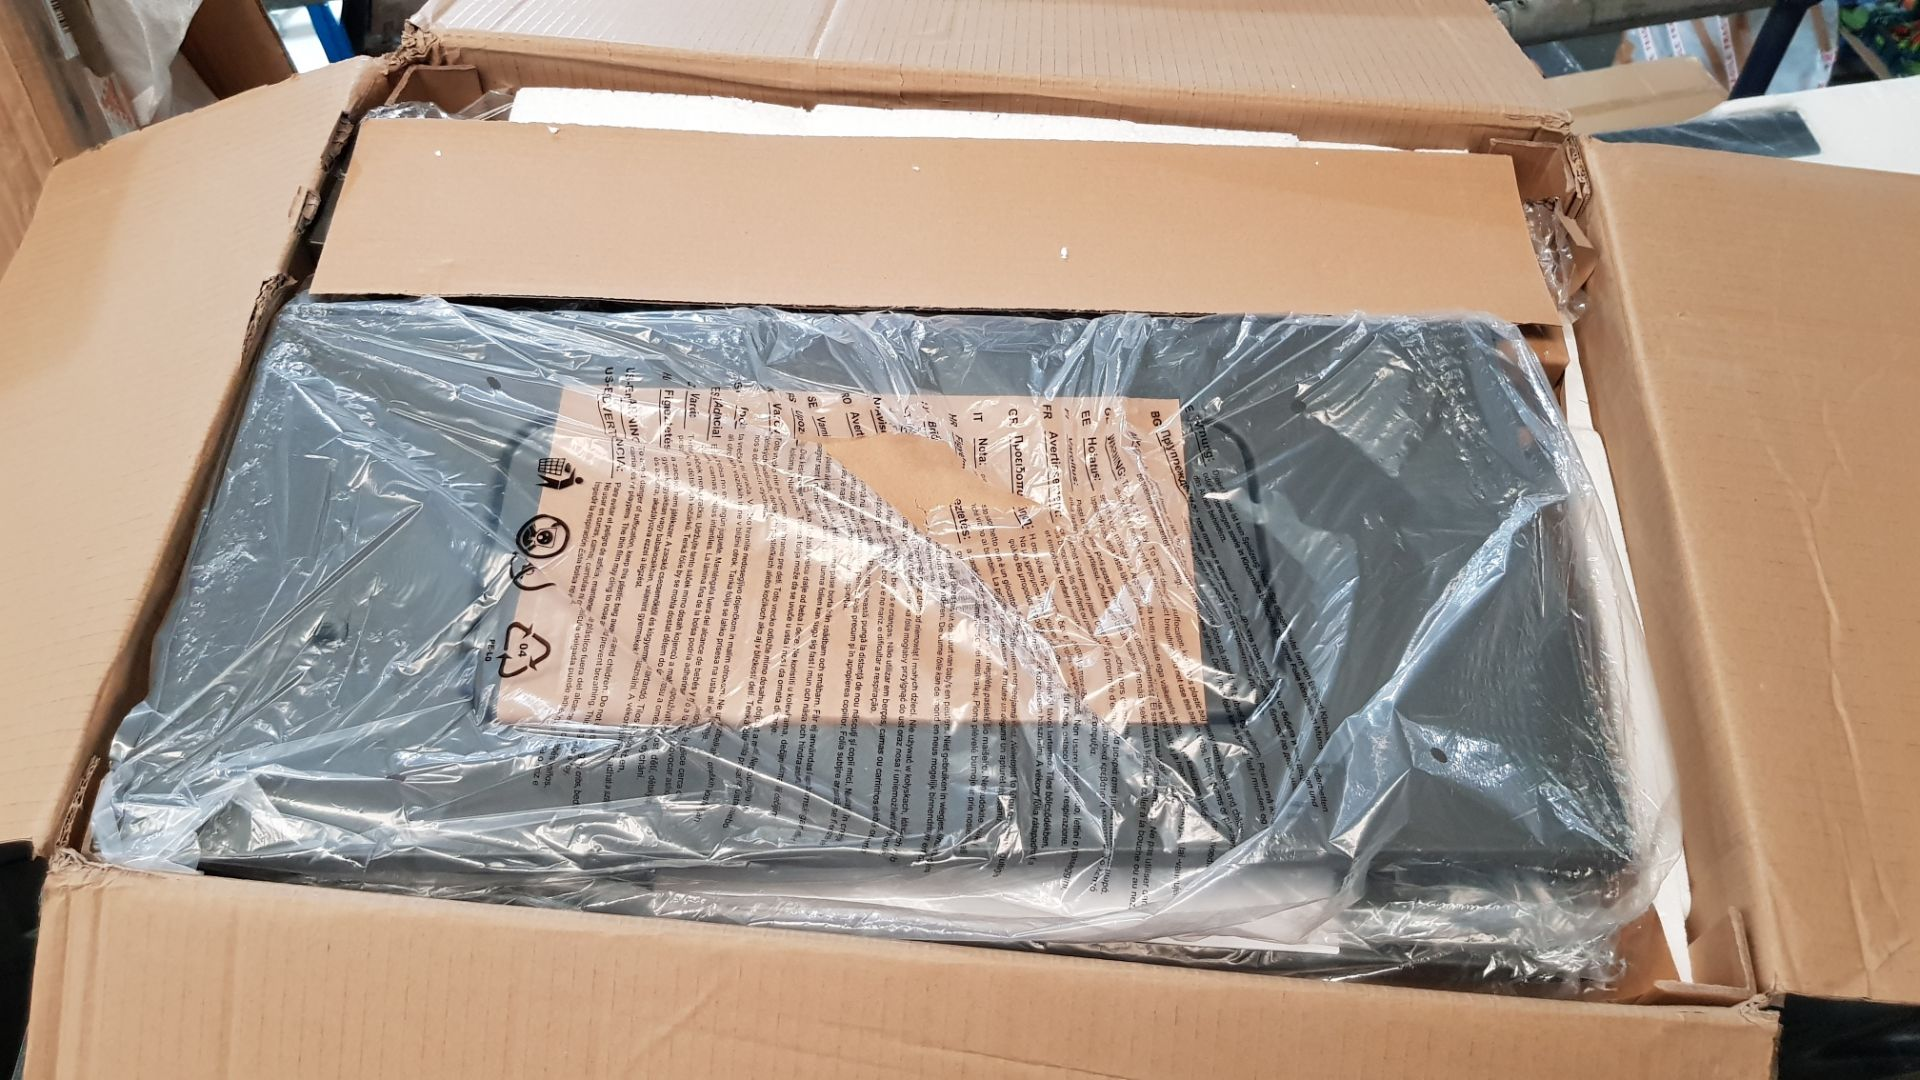 (P10) 1x Texas Franklin Charcoal BBQ. RRP £180.00. Unit Appears Unused, As New, Contents Have Not P - Image 4 of 4